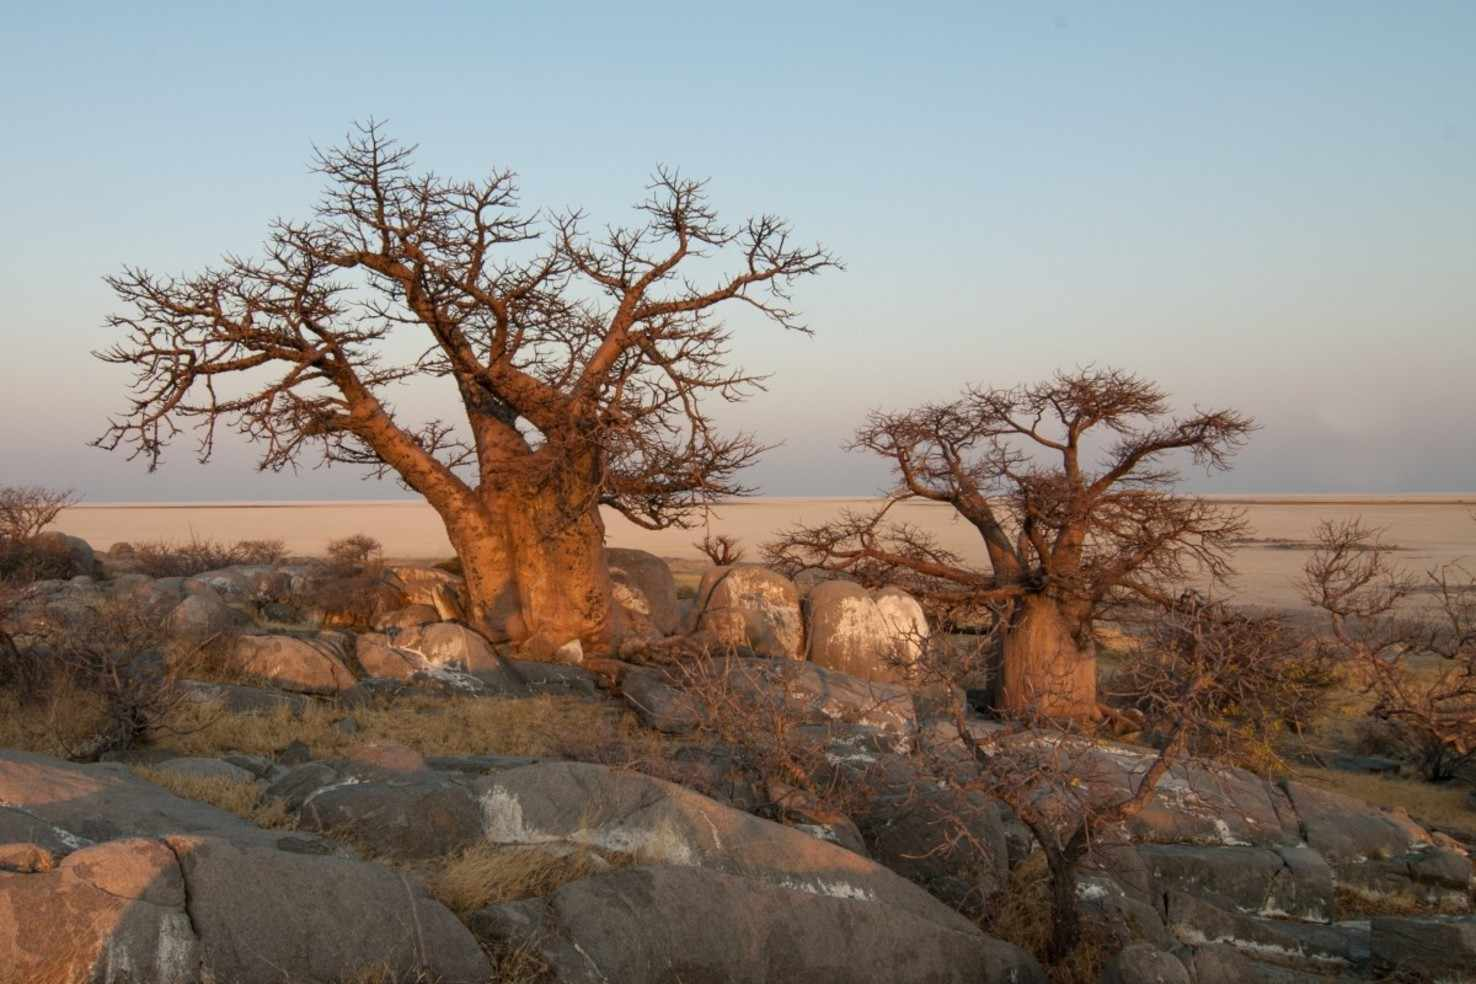 Botswana Discovery With Zimbabwe And South Africa Vacation Package